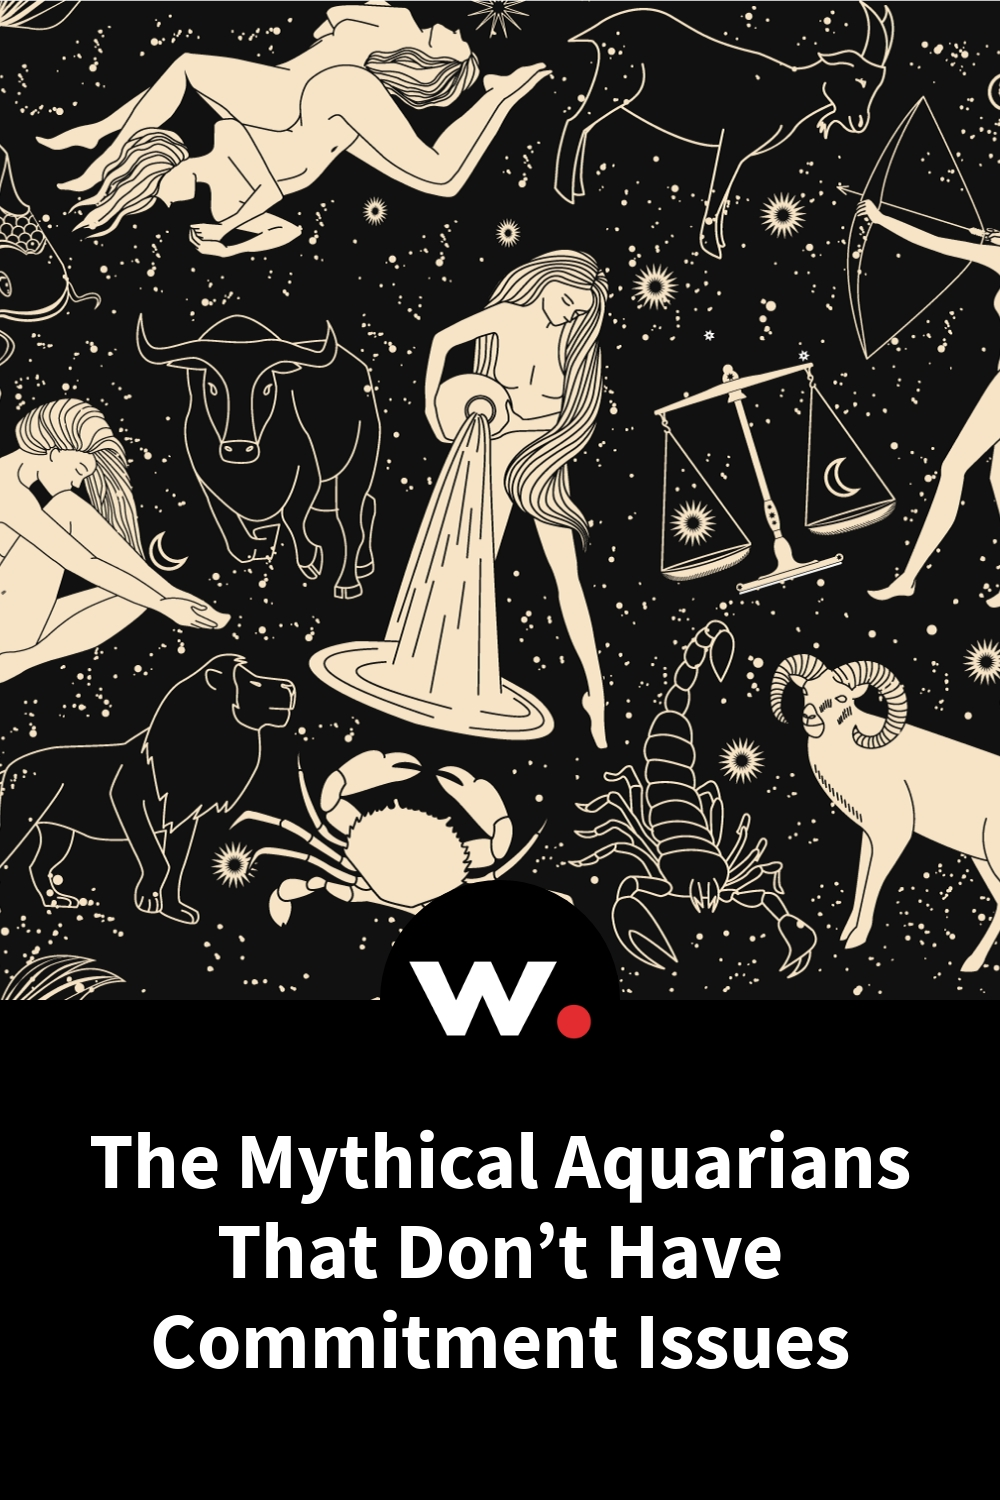 The Mythical Aquarians That Don't Have Commitment Issues